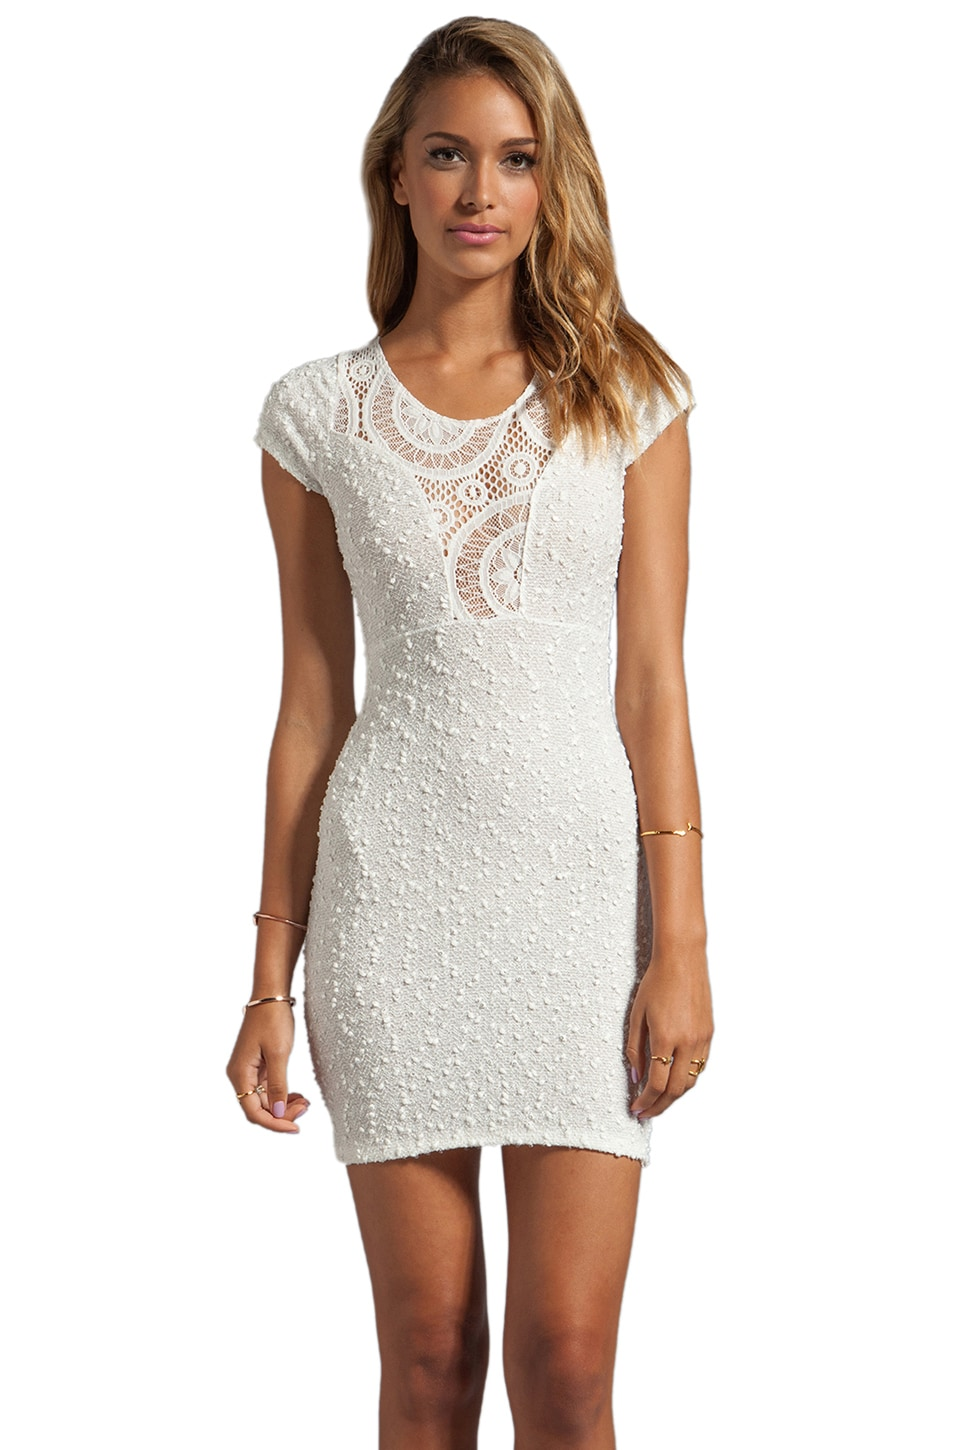 VOOM by Joy Han Penelope Short Sleeve Dress in White